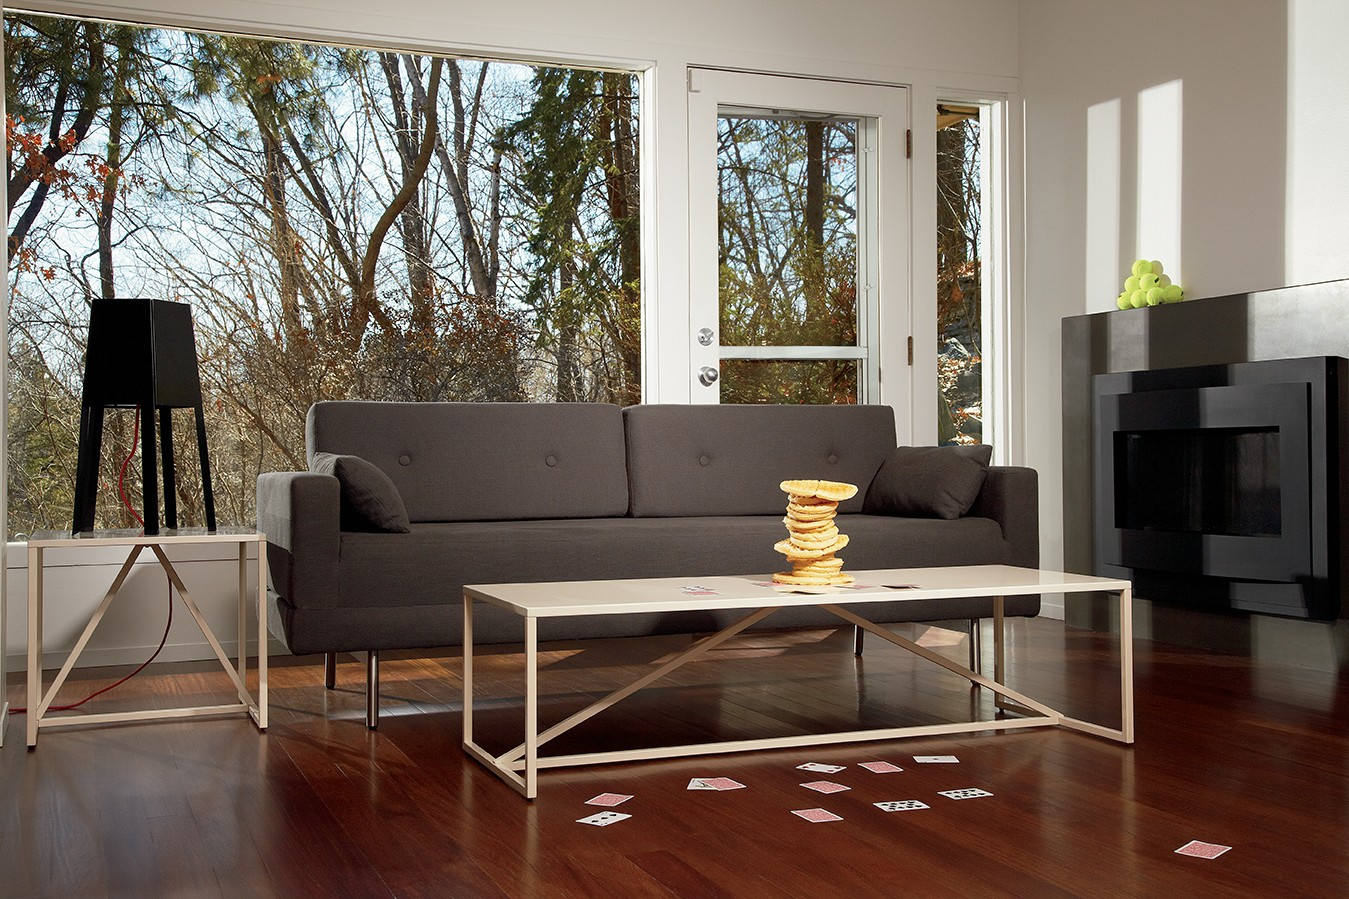 designer-white-rectangle-coffee-table-steel-trestle-architectural-base-smooth-top-long-tabletop-for-large-sofa